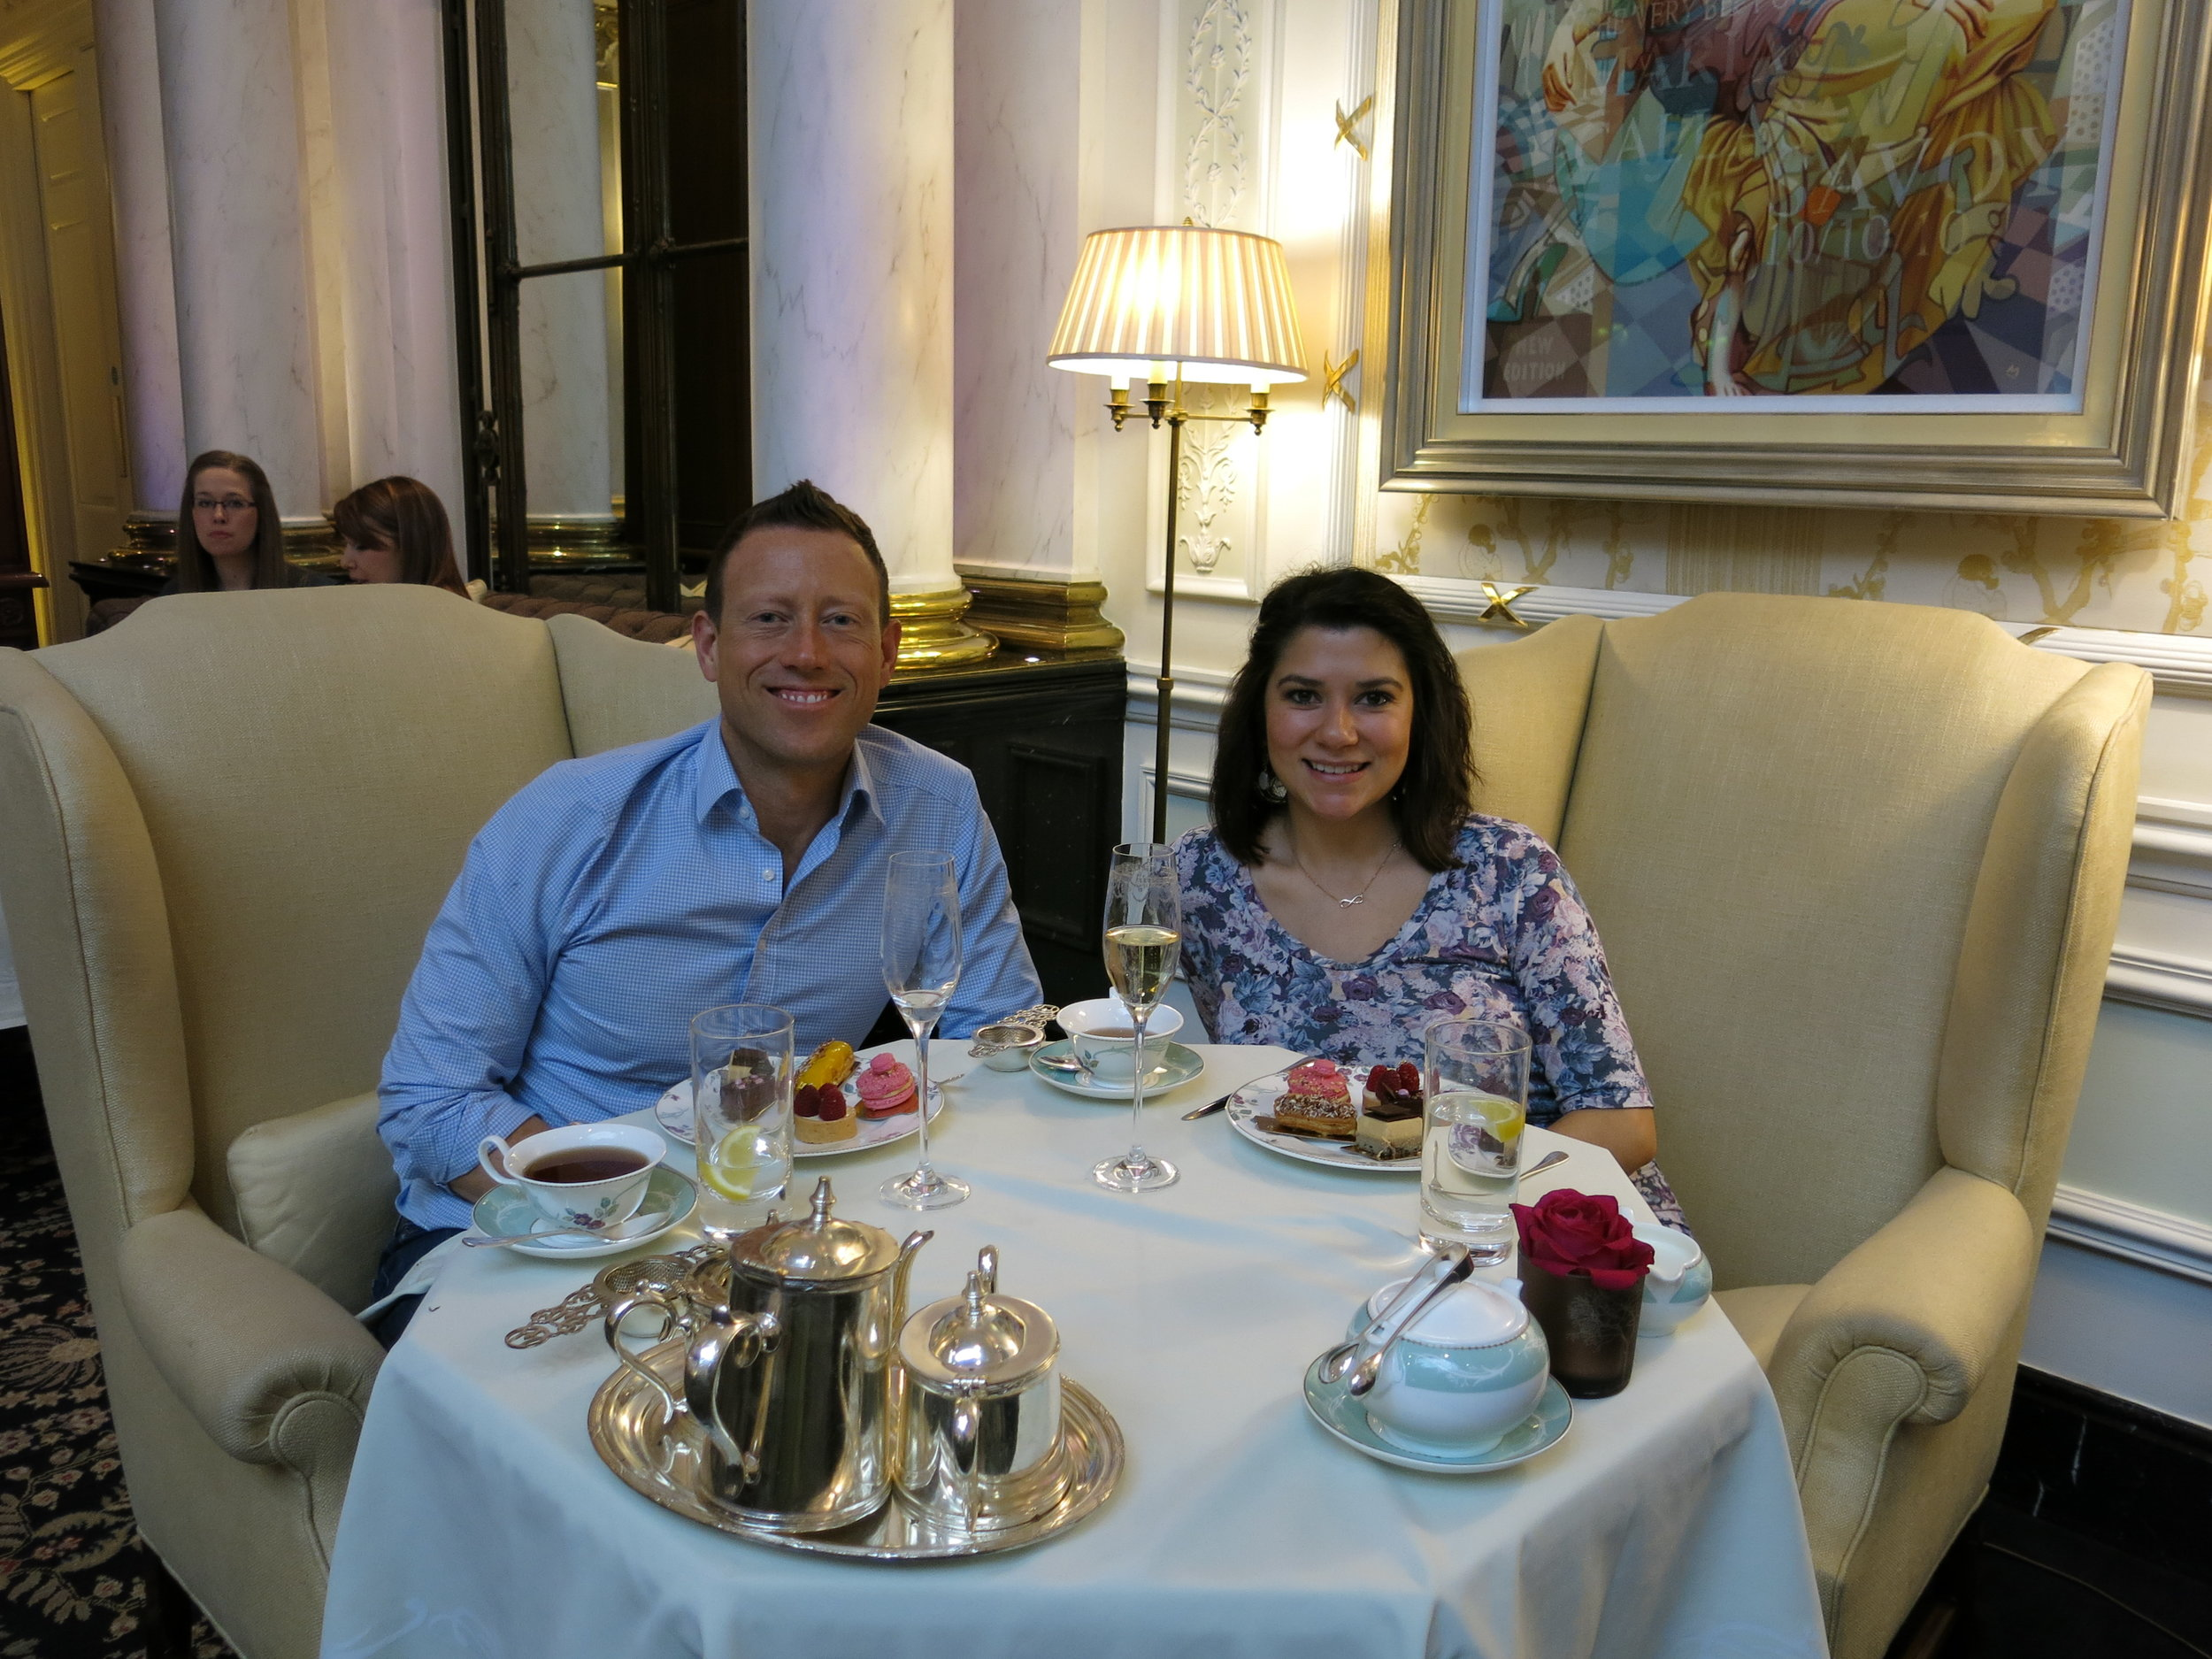 Afternoon Tea at the Savoy in London